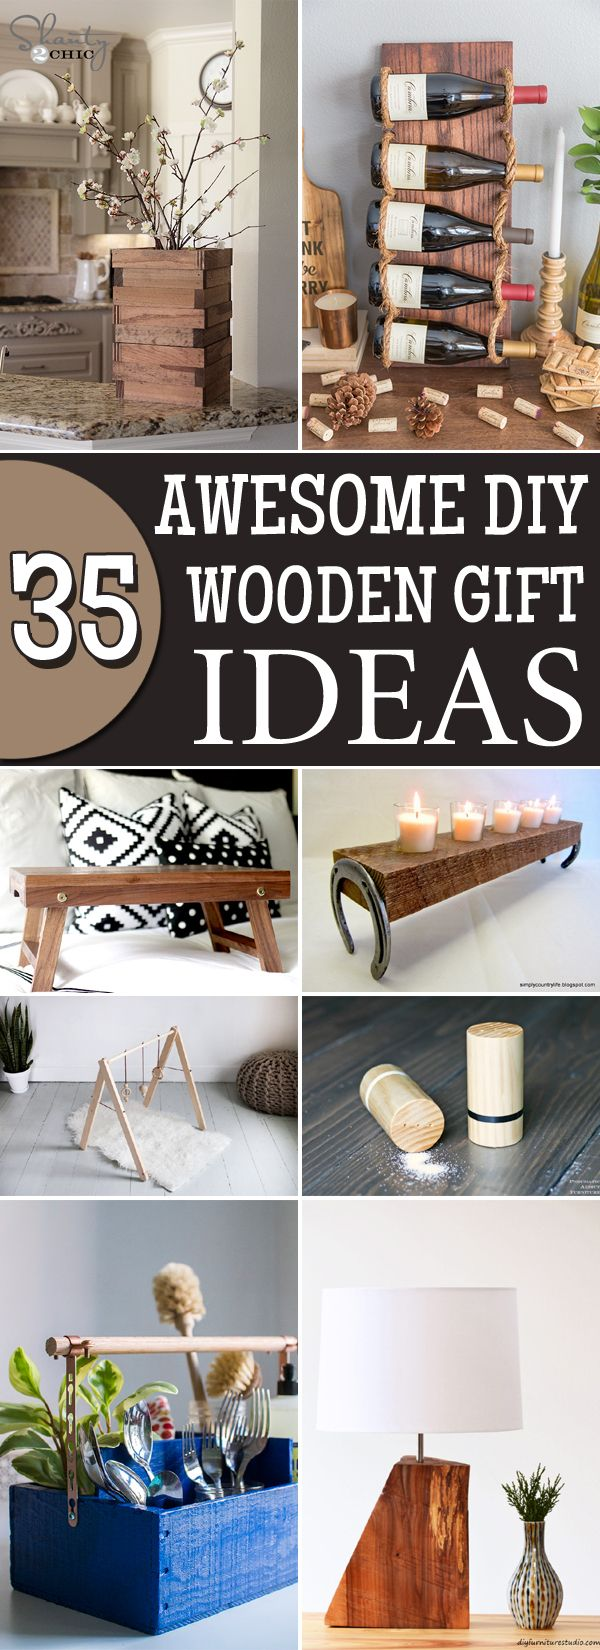 35 Awesome Diy Wooden Gift Ideas That Everyone Will Love Diy Ideas